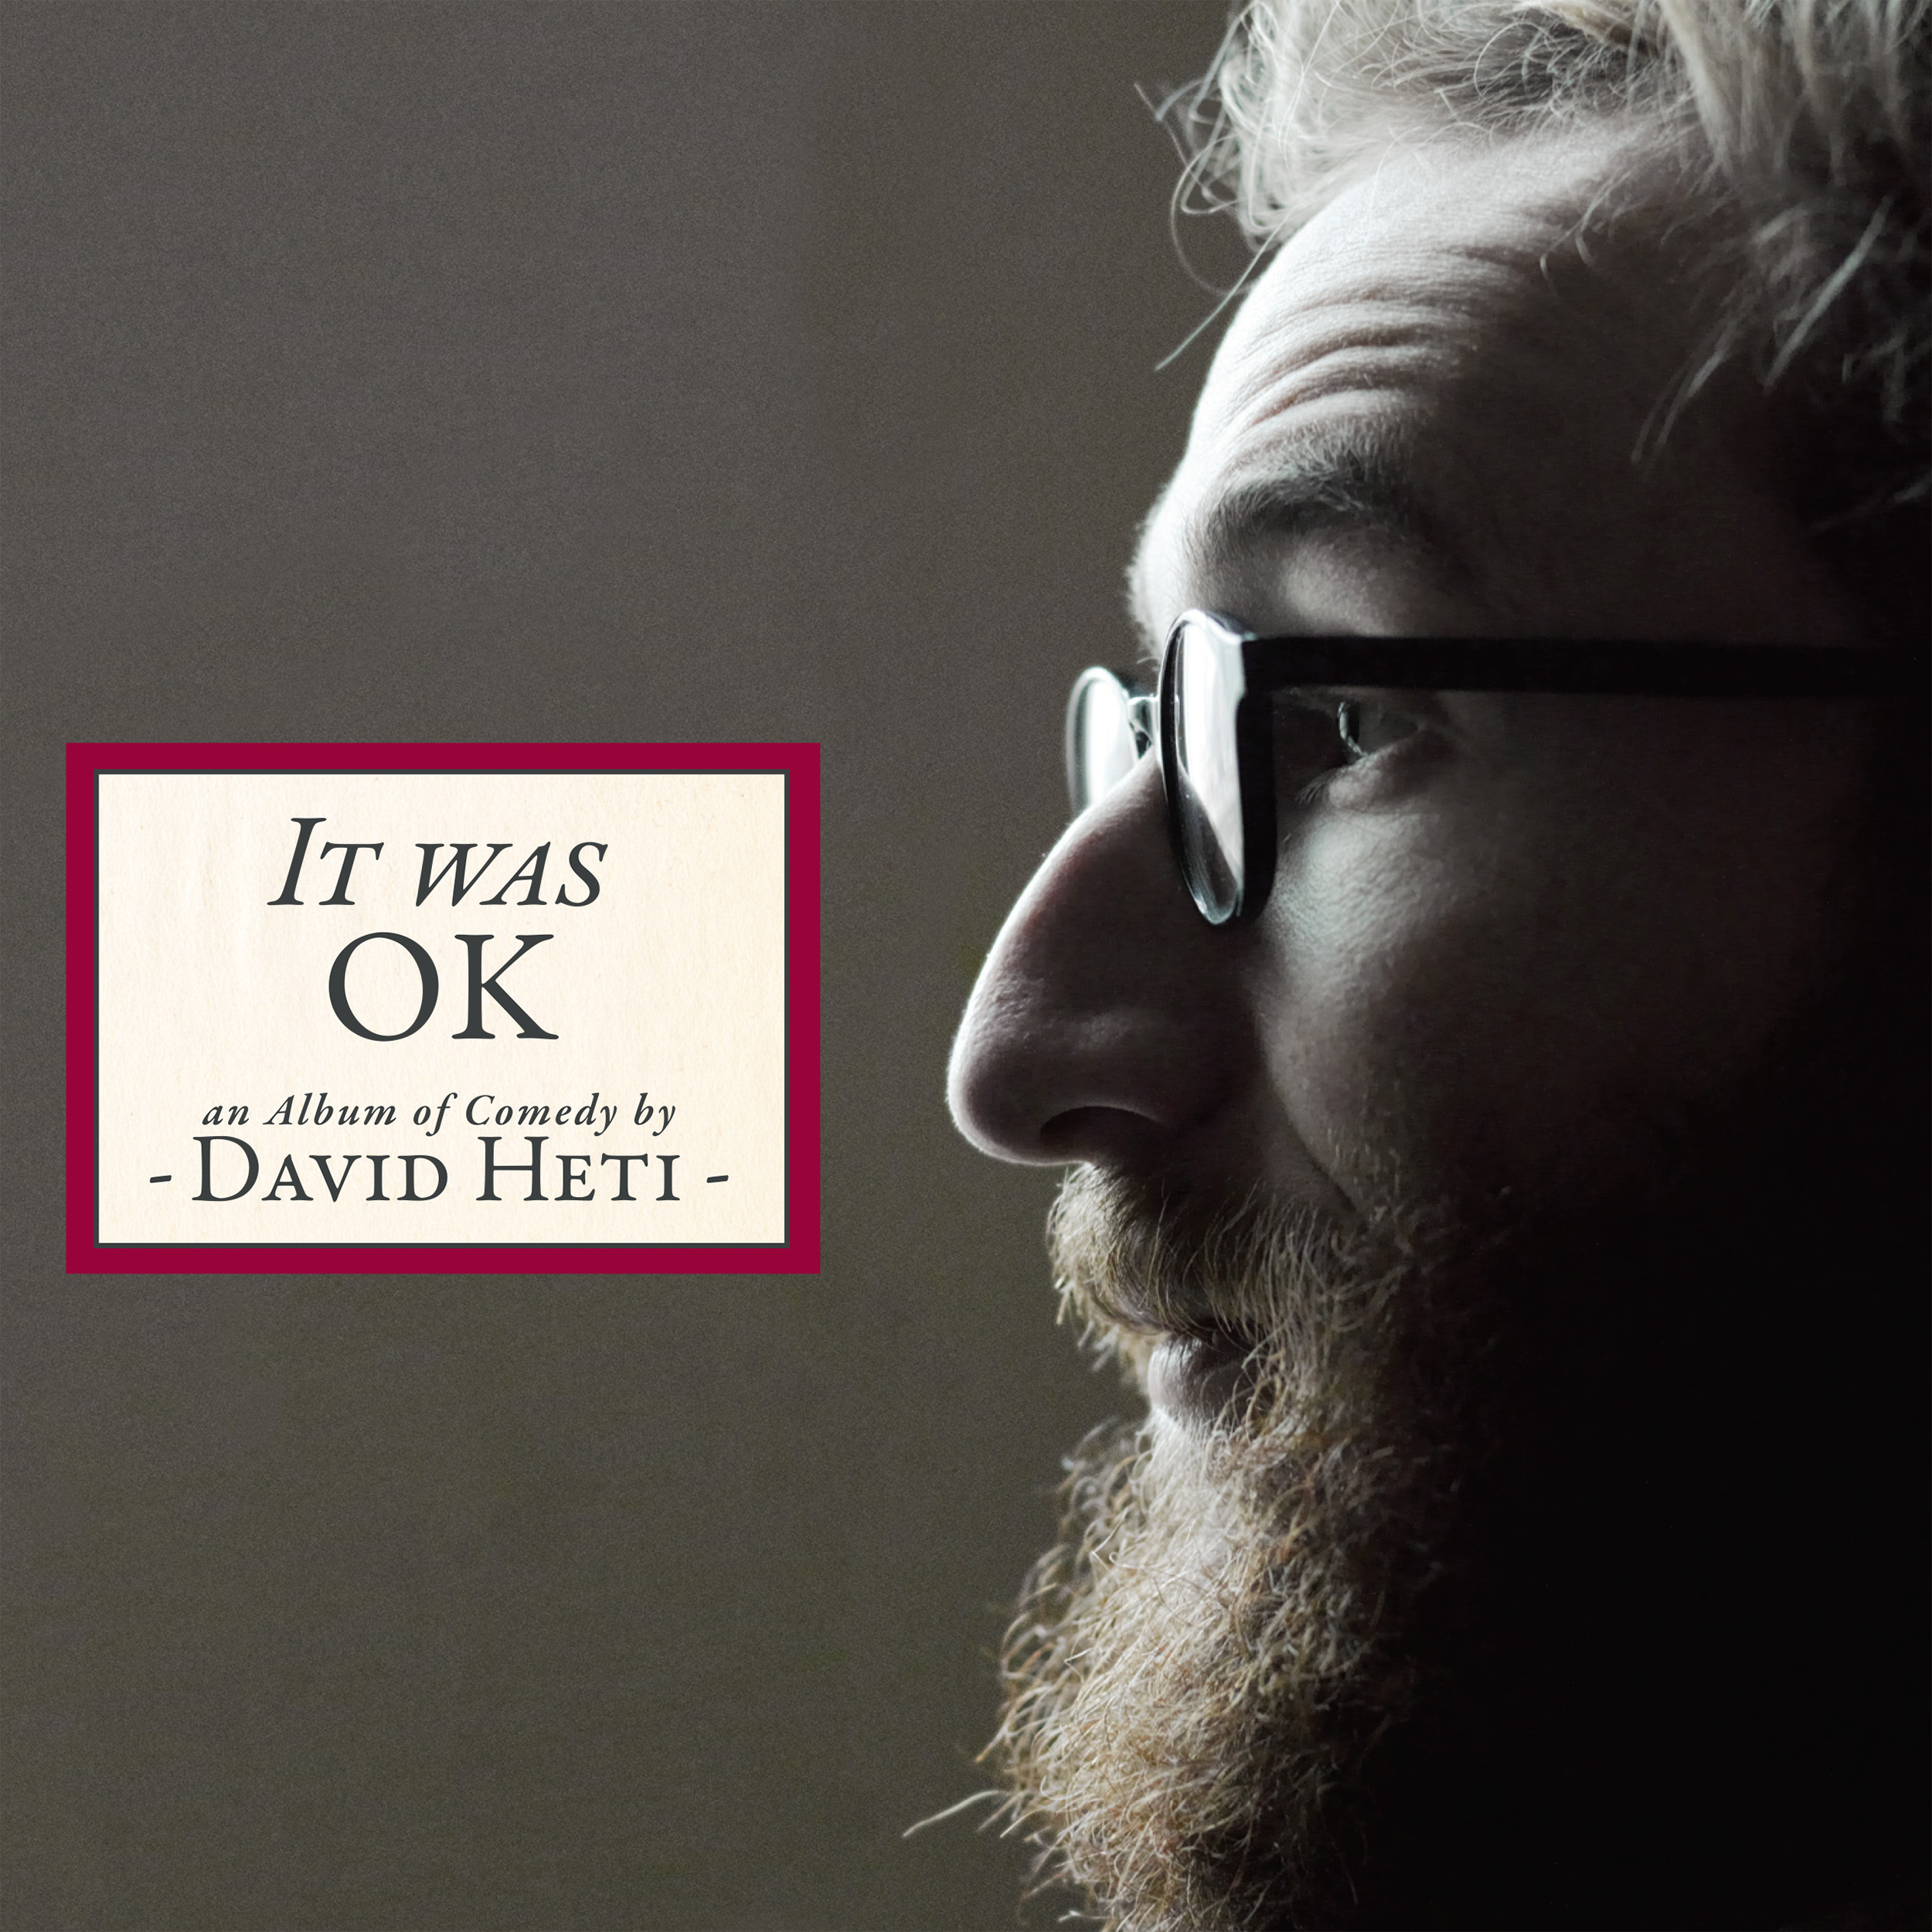 COMEDY NEWS – IT WAS OK FROM COMEDIAN DAVID HETI SET FOR RELEASE ON MAY 5 ON STAND UP! RECORDS